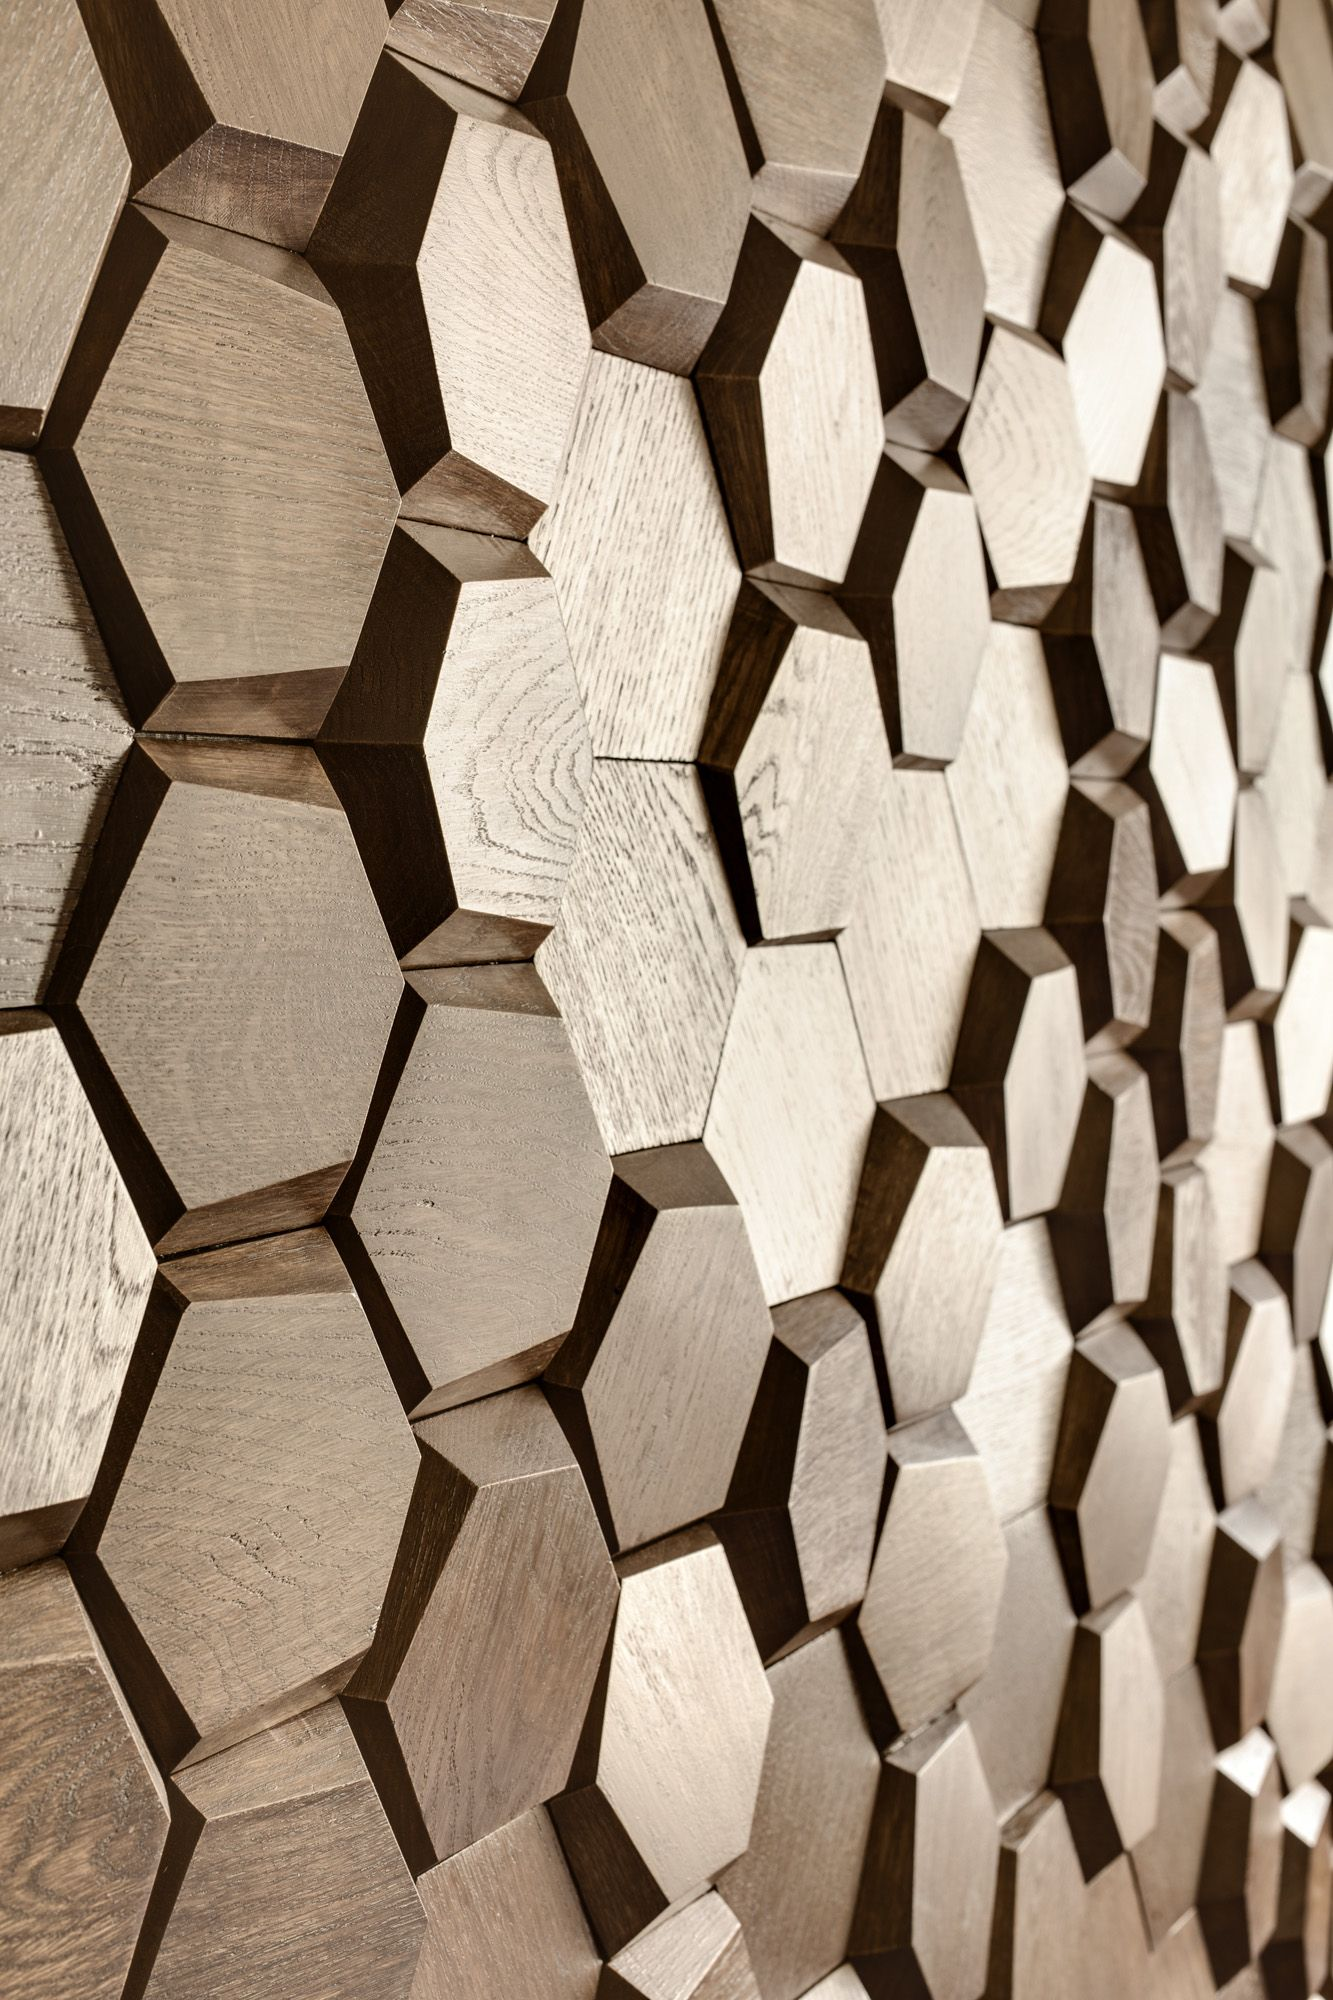 Voluminous And Flat Hexagons Mosaic Honey Recreate The Panels In The Shape And Texture Of The Honeycomb Wooden Wall Panels Hexagonal Mosaic Wooden Wall Decor